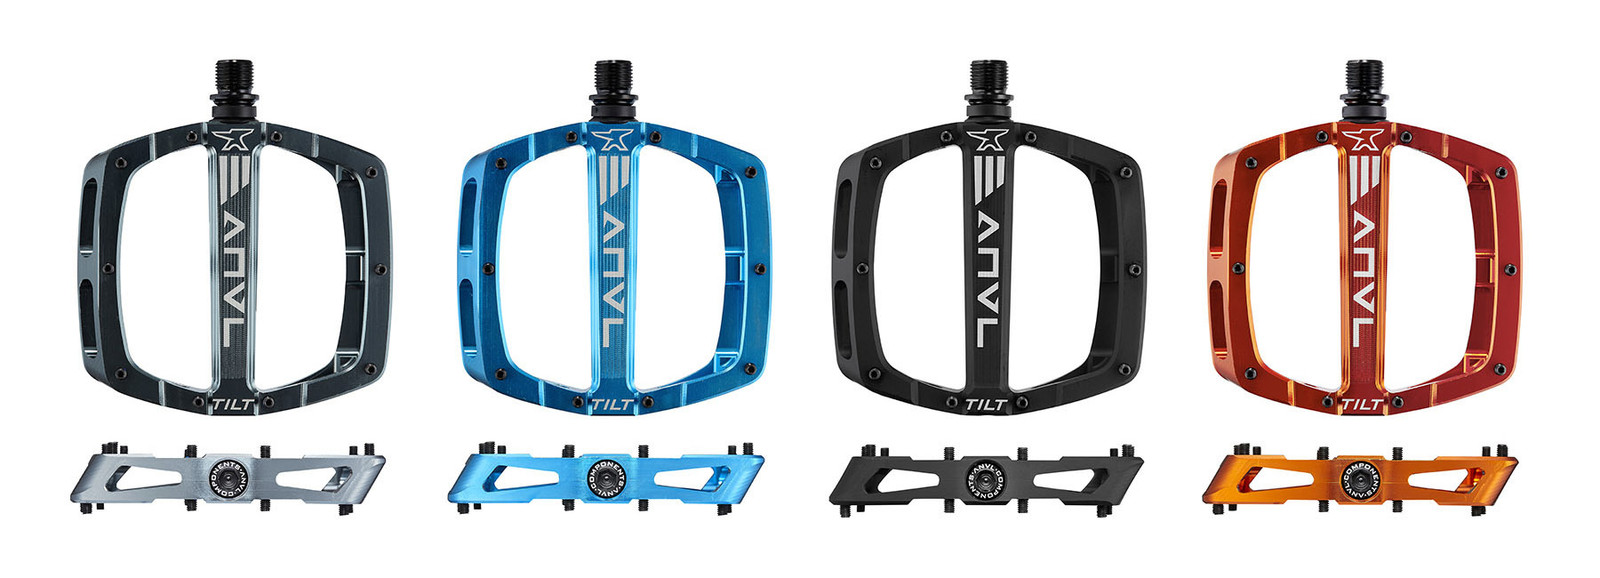 ANVL Tilt full color range